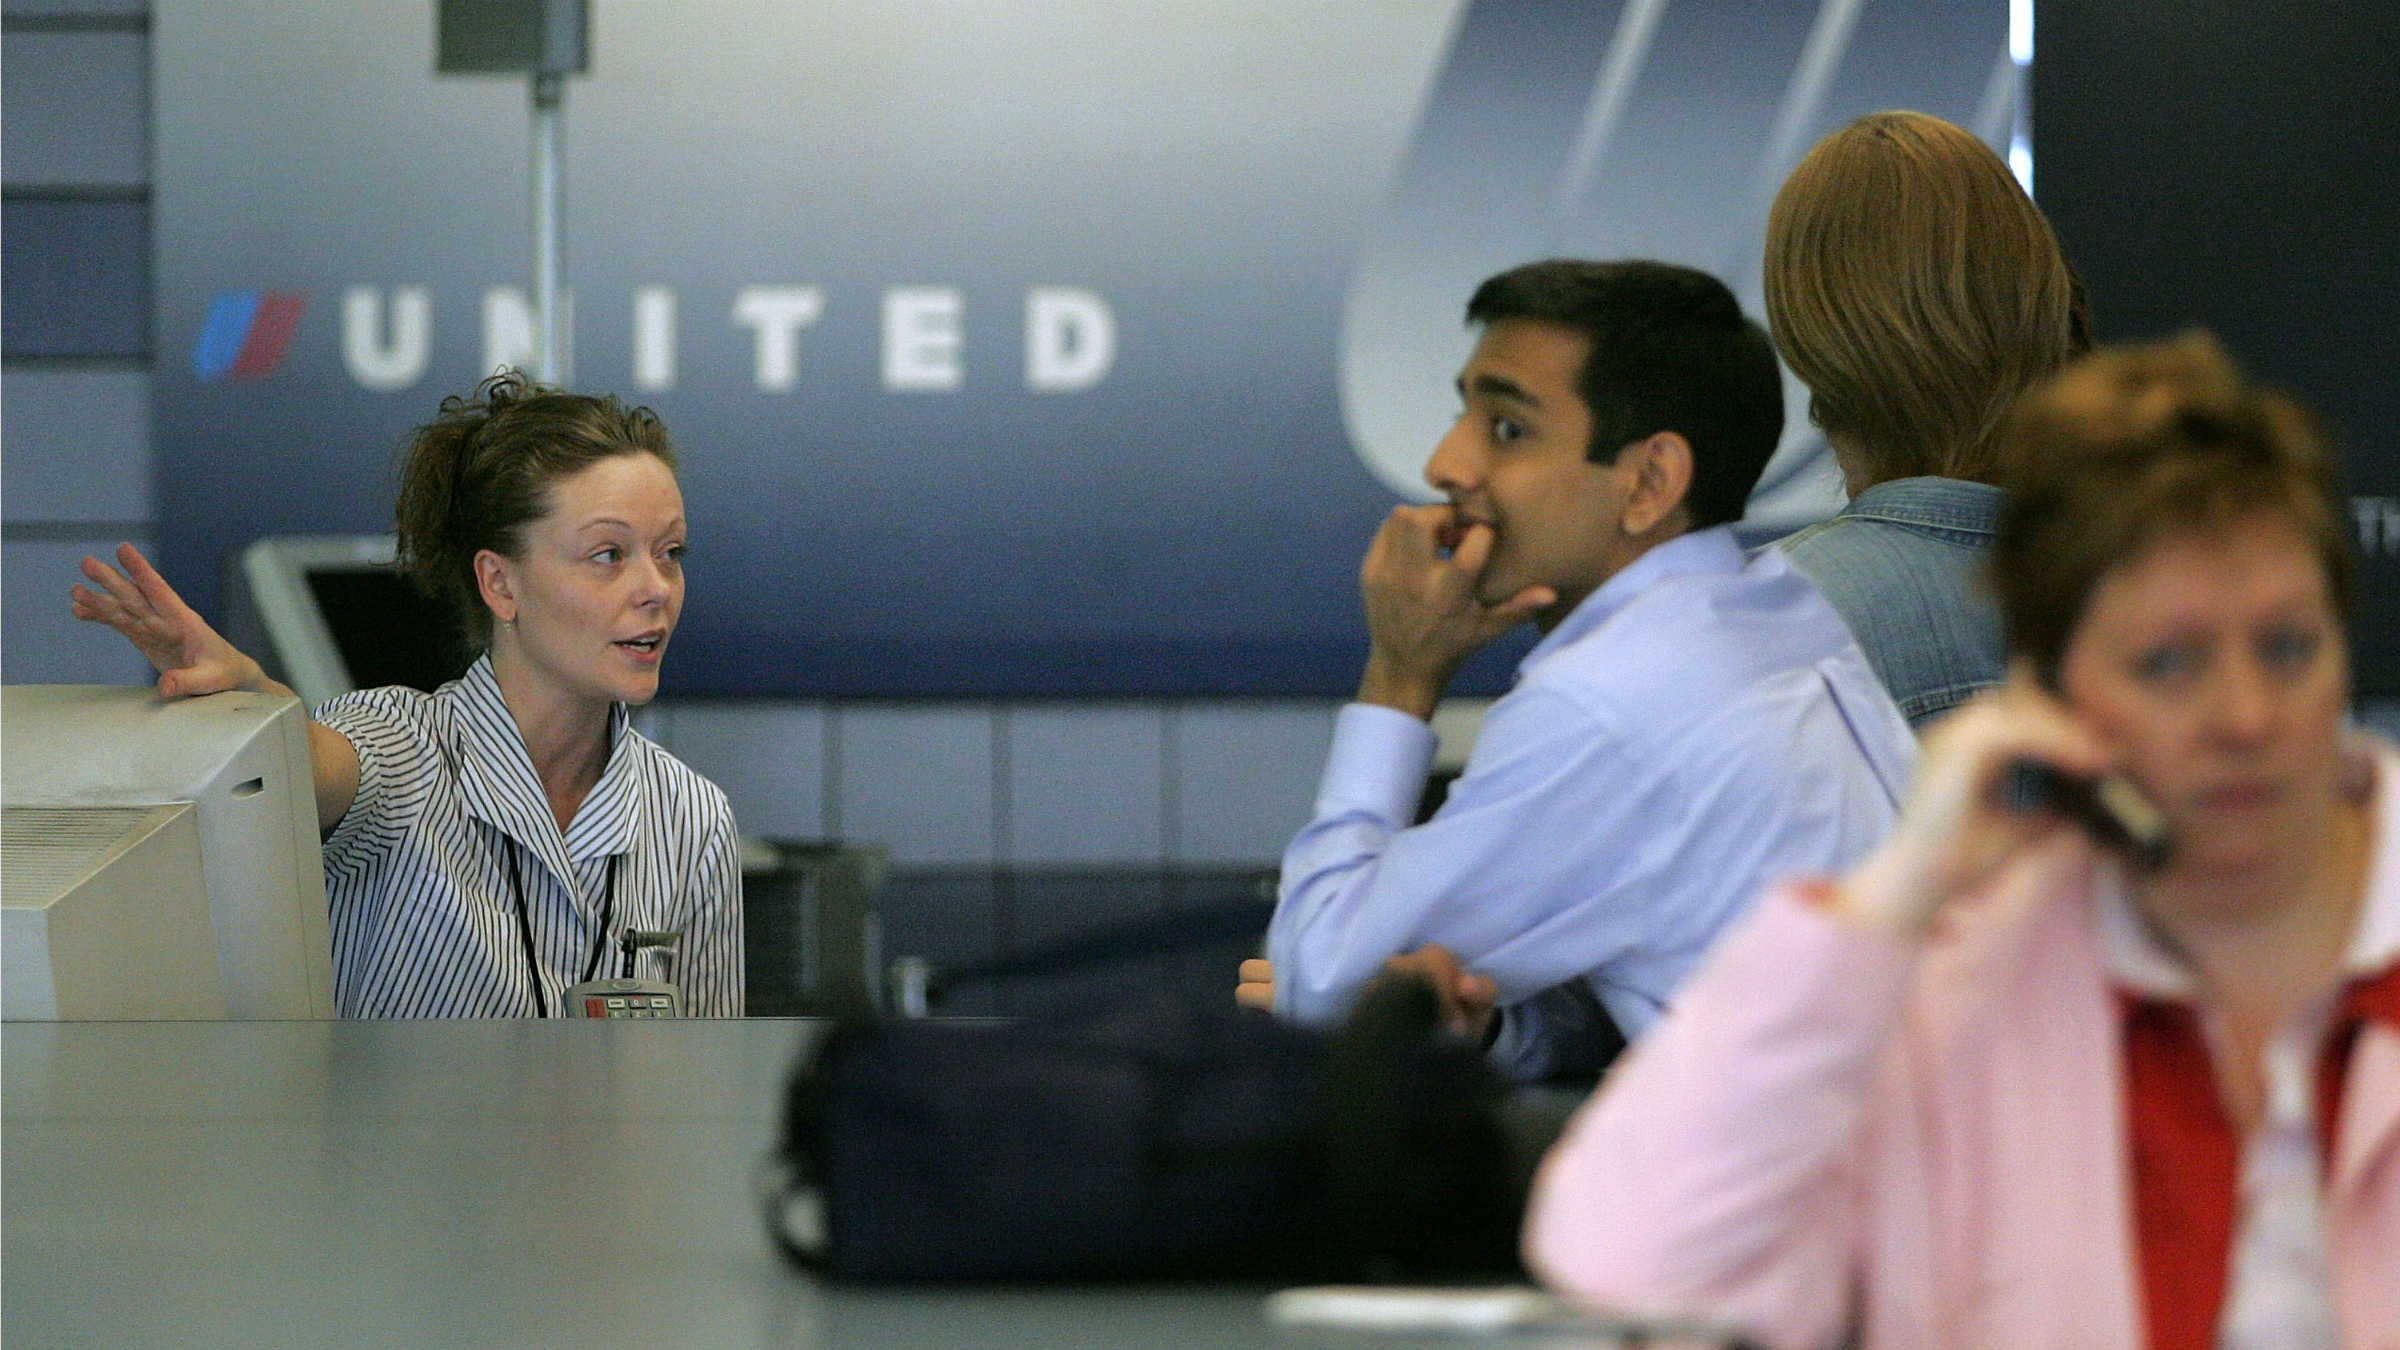 Upset air travelers are an airline's worst nightmare.